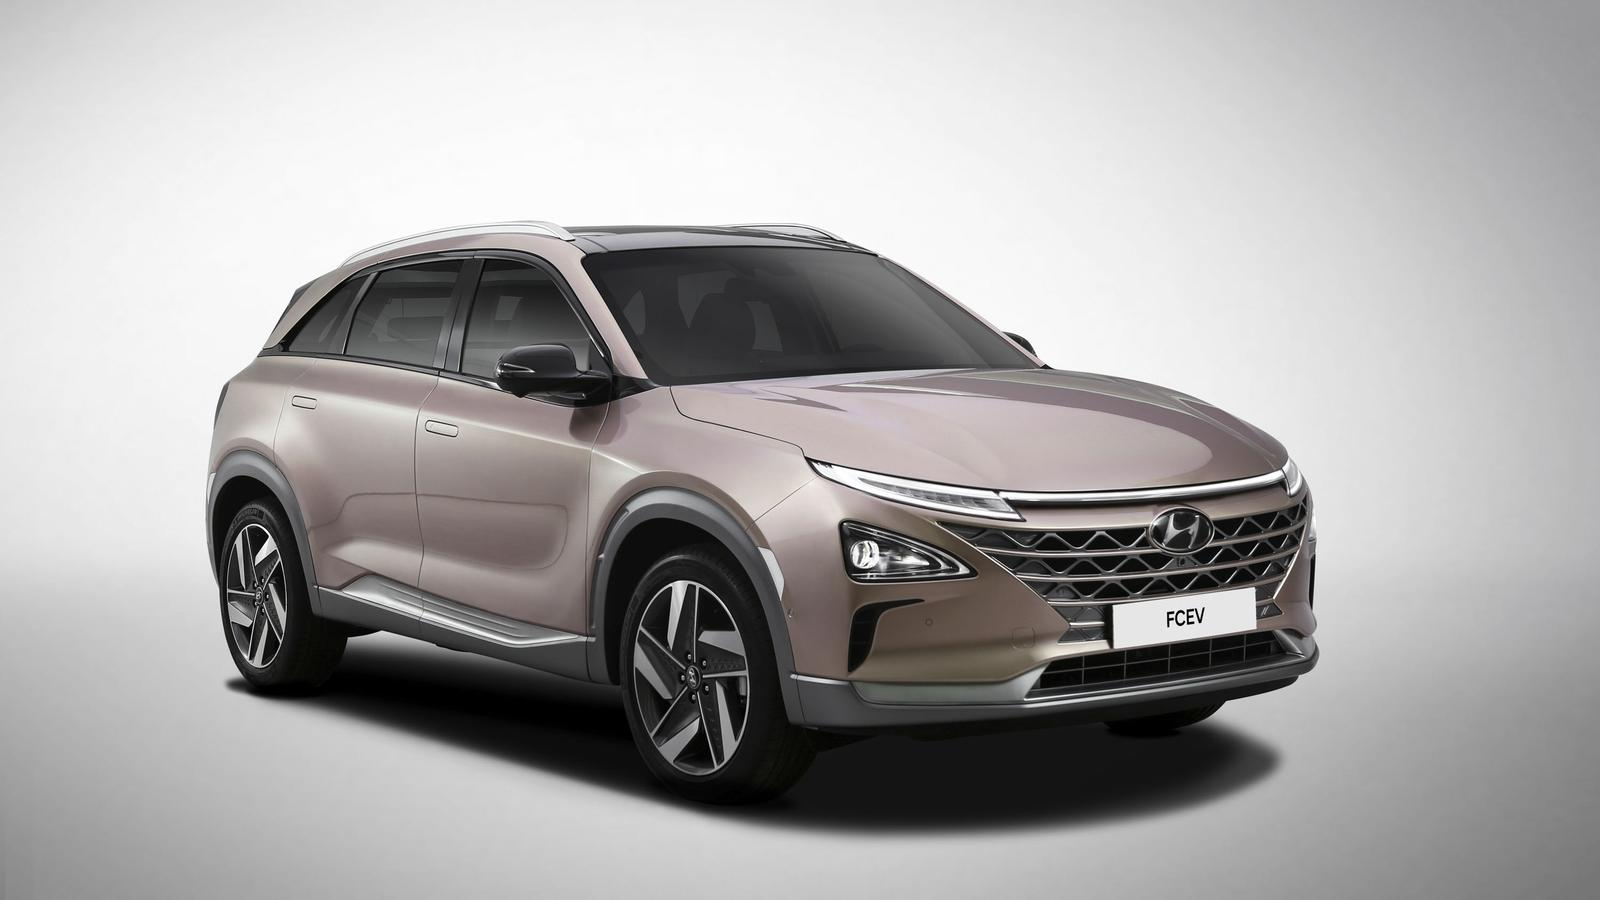 2018 Hyundai Nexo Fcev Review Top Speed